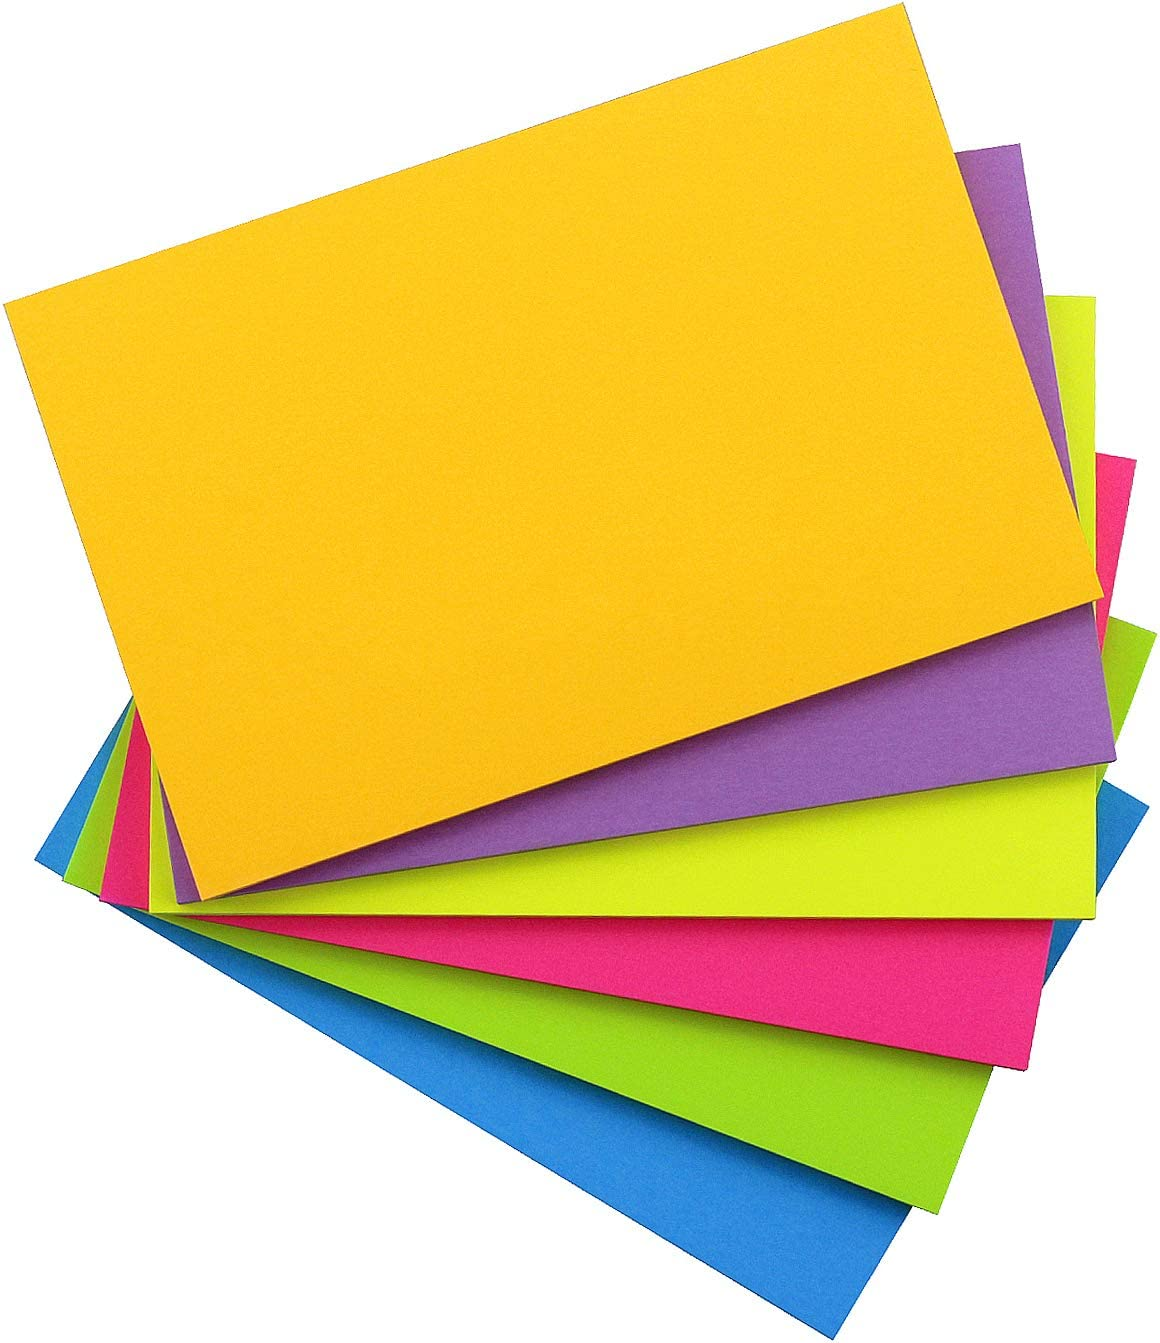 Sticky Notes Many popular brands 4x6 6 Ranking integrated 1st place Color Bright Pac Pads Colorful Pad